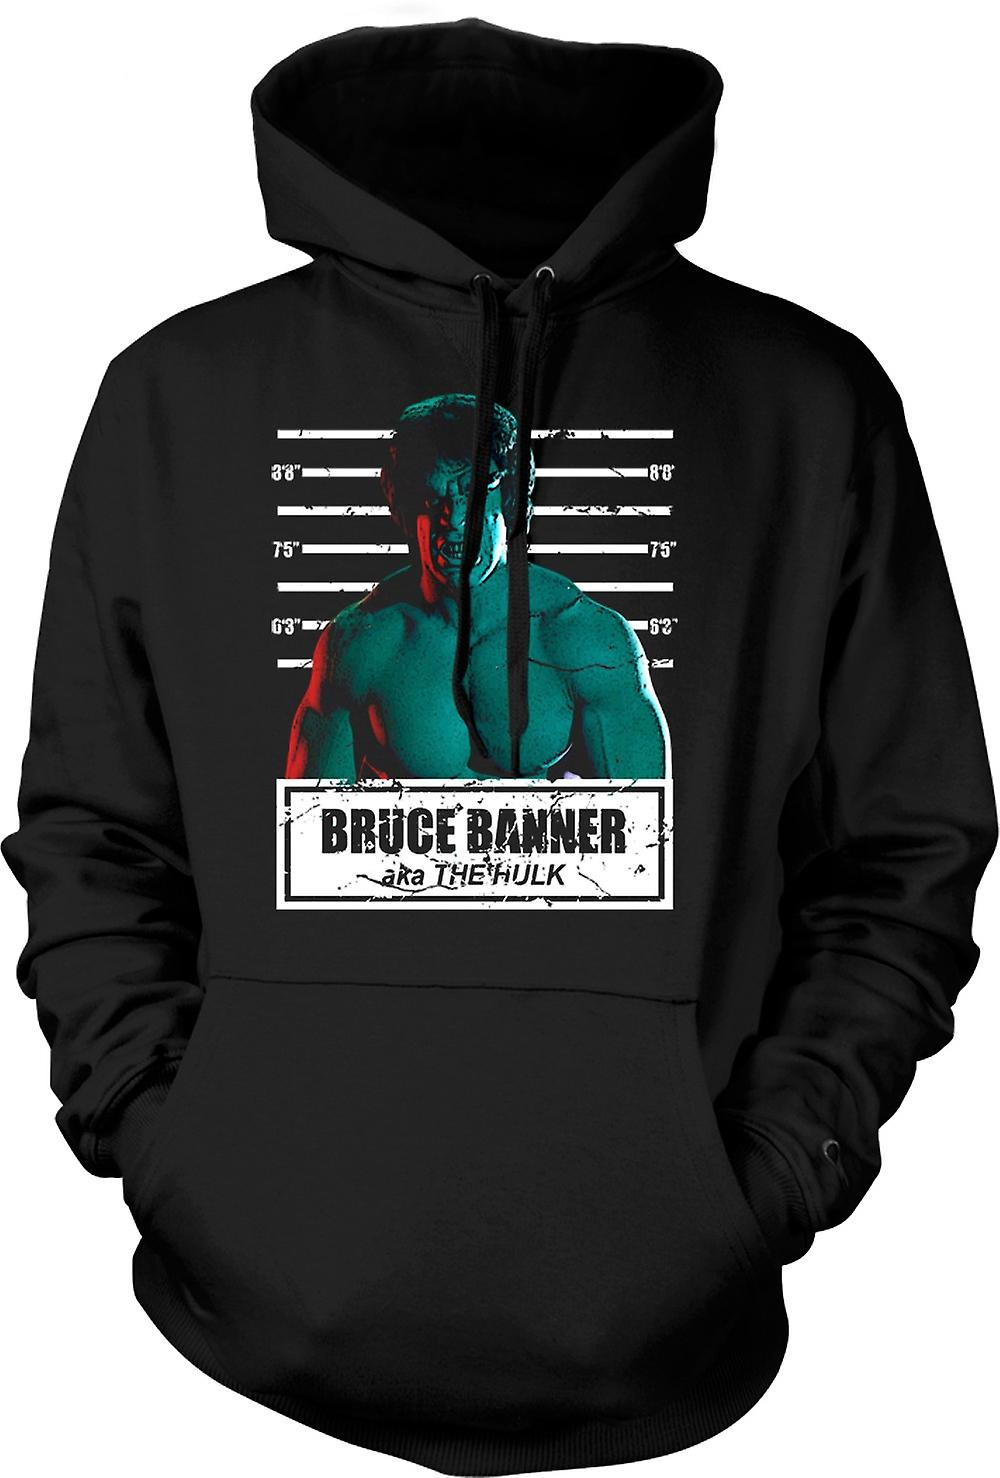 Mens Hoodie - The Hulk - David Banner - Mug Shot